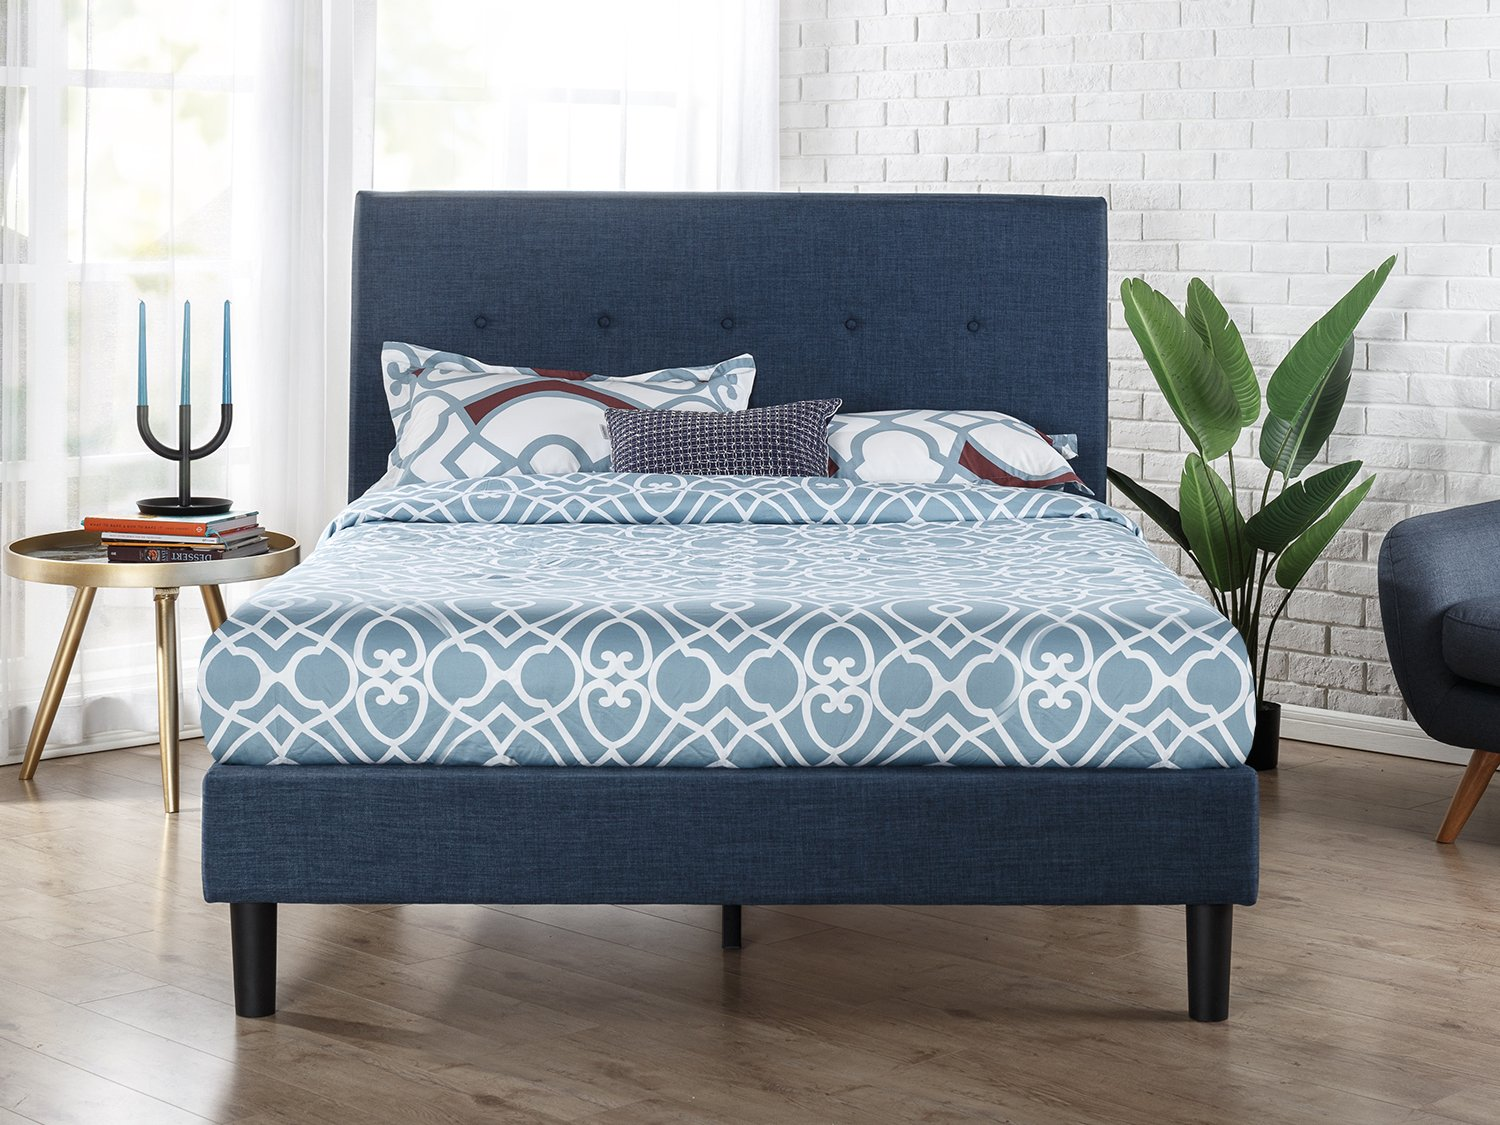 Zinus Upholstered Navy Button Detailed Platform Bed / Wood Slat Support, Queen